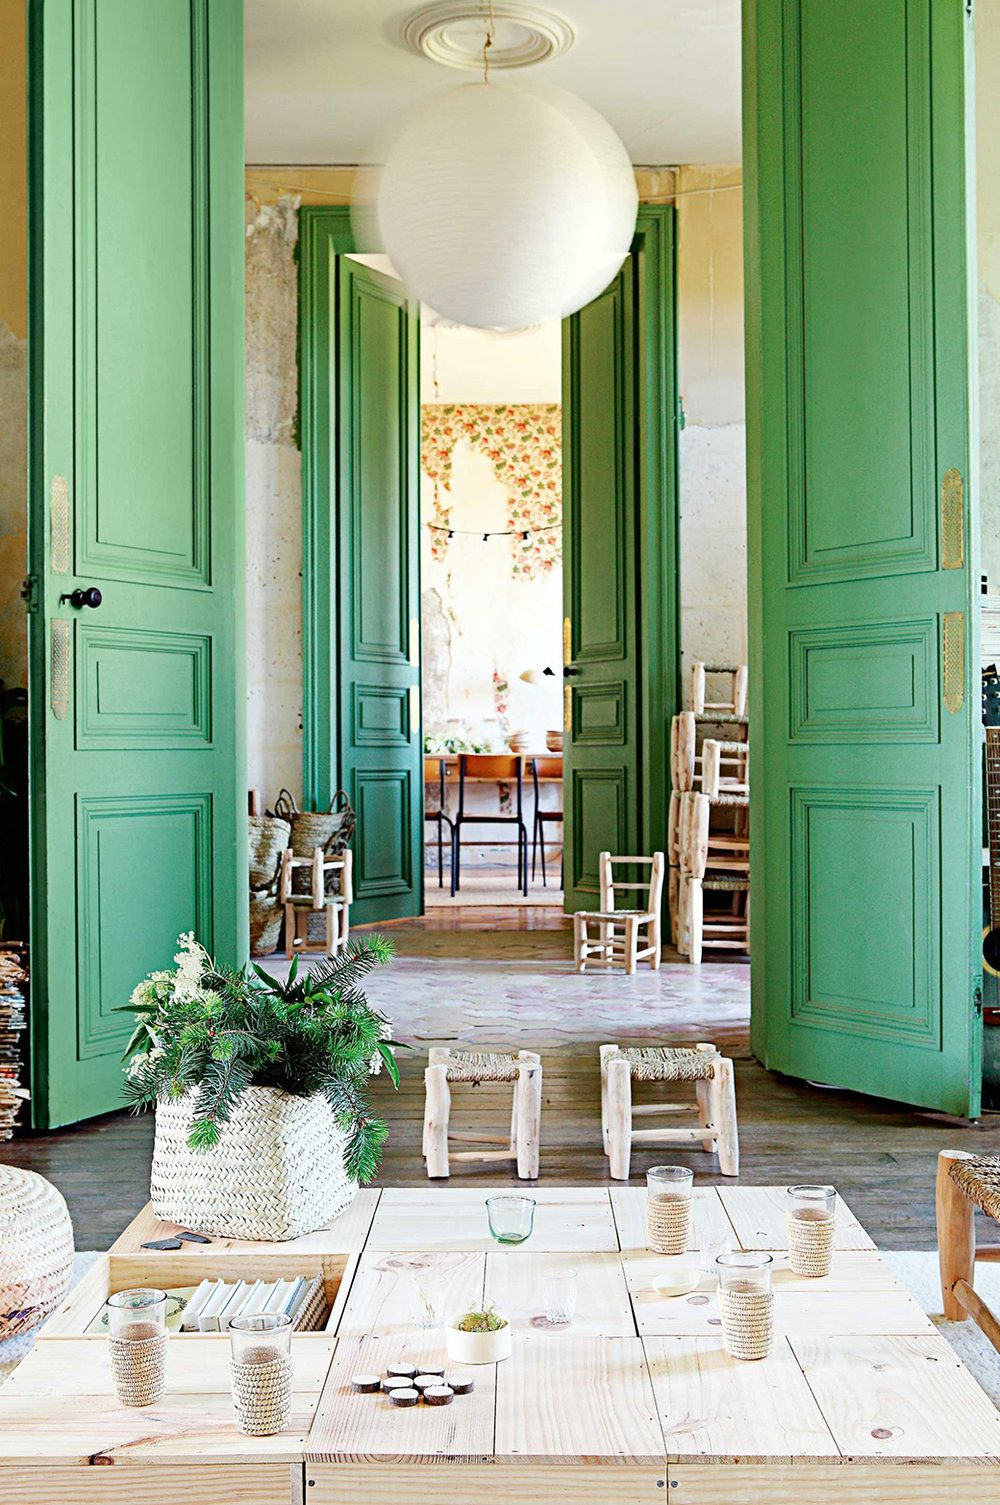 Stunning green paneled doors at Le Chteau